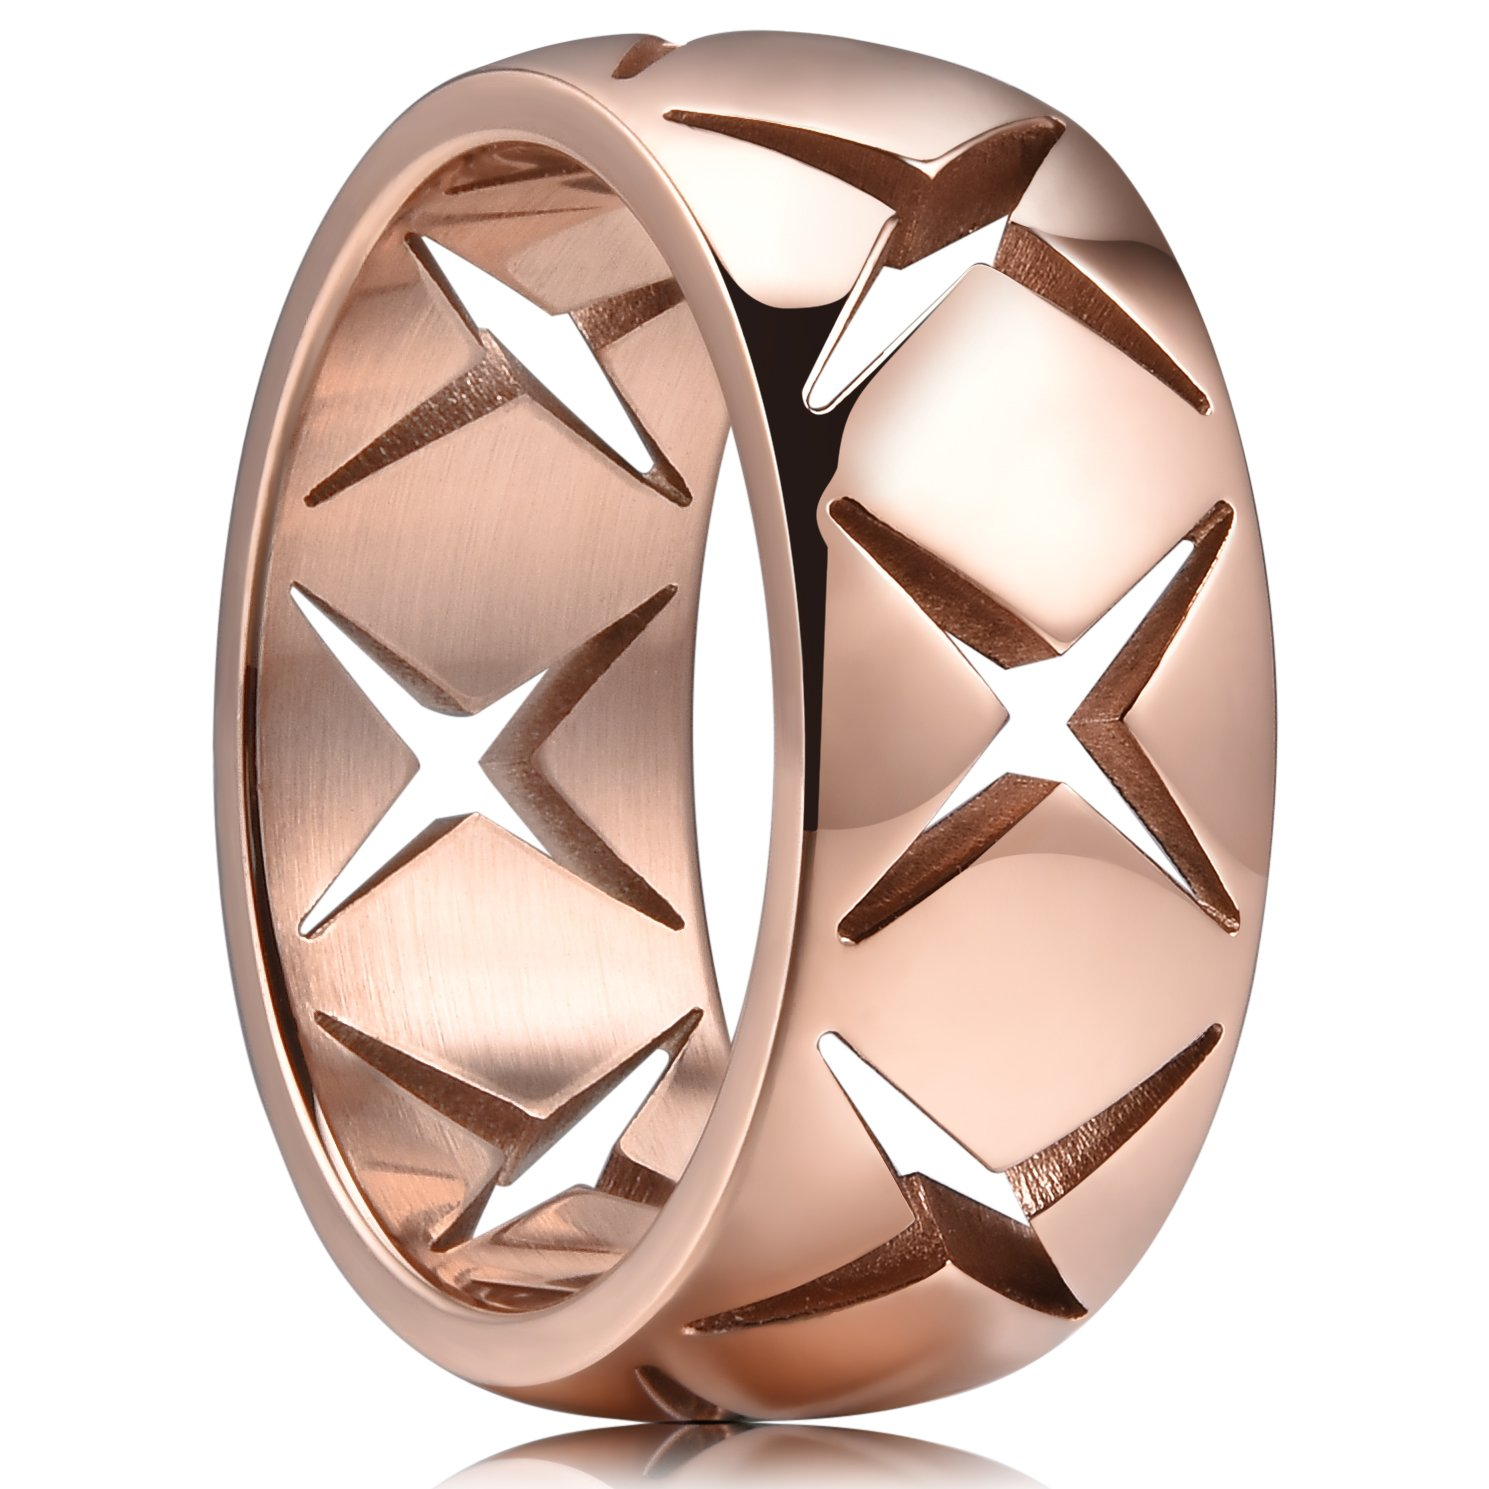 King Will TIME 8mm 316 Stainless Steel Wedding Band Ring with Cross Hollow&Rose Gold Plated(10)